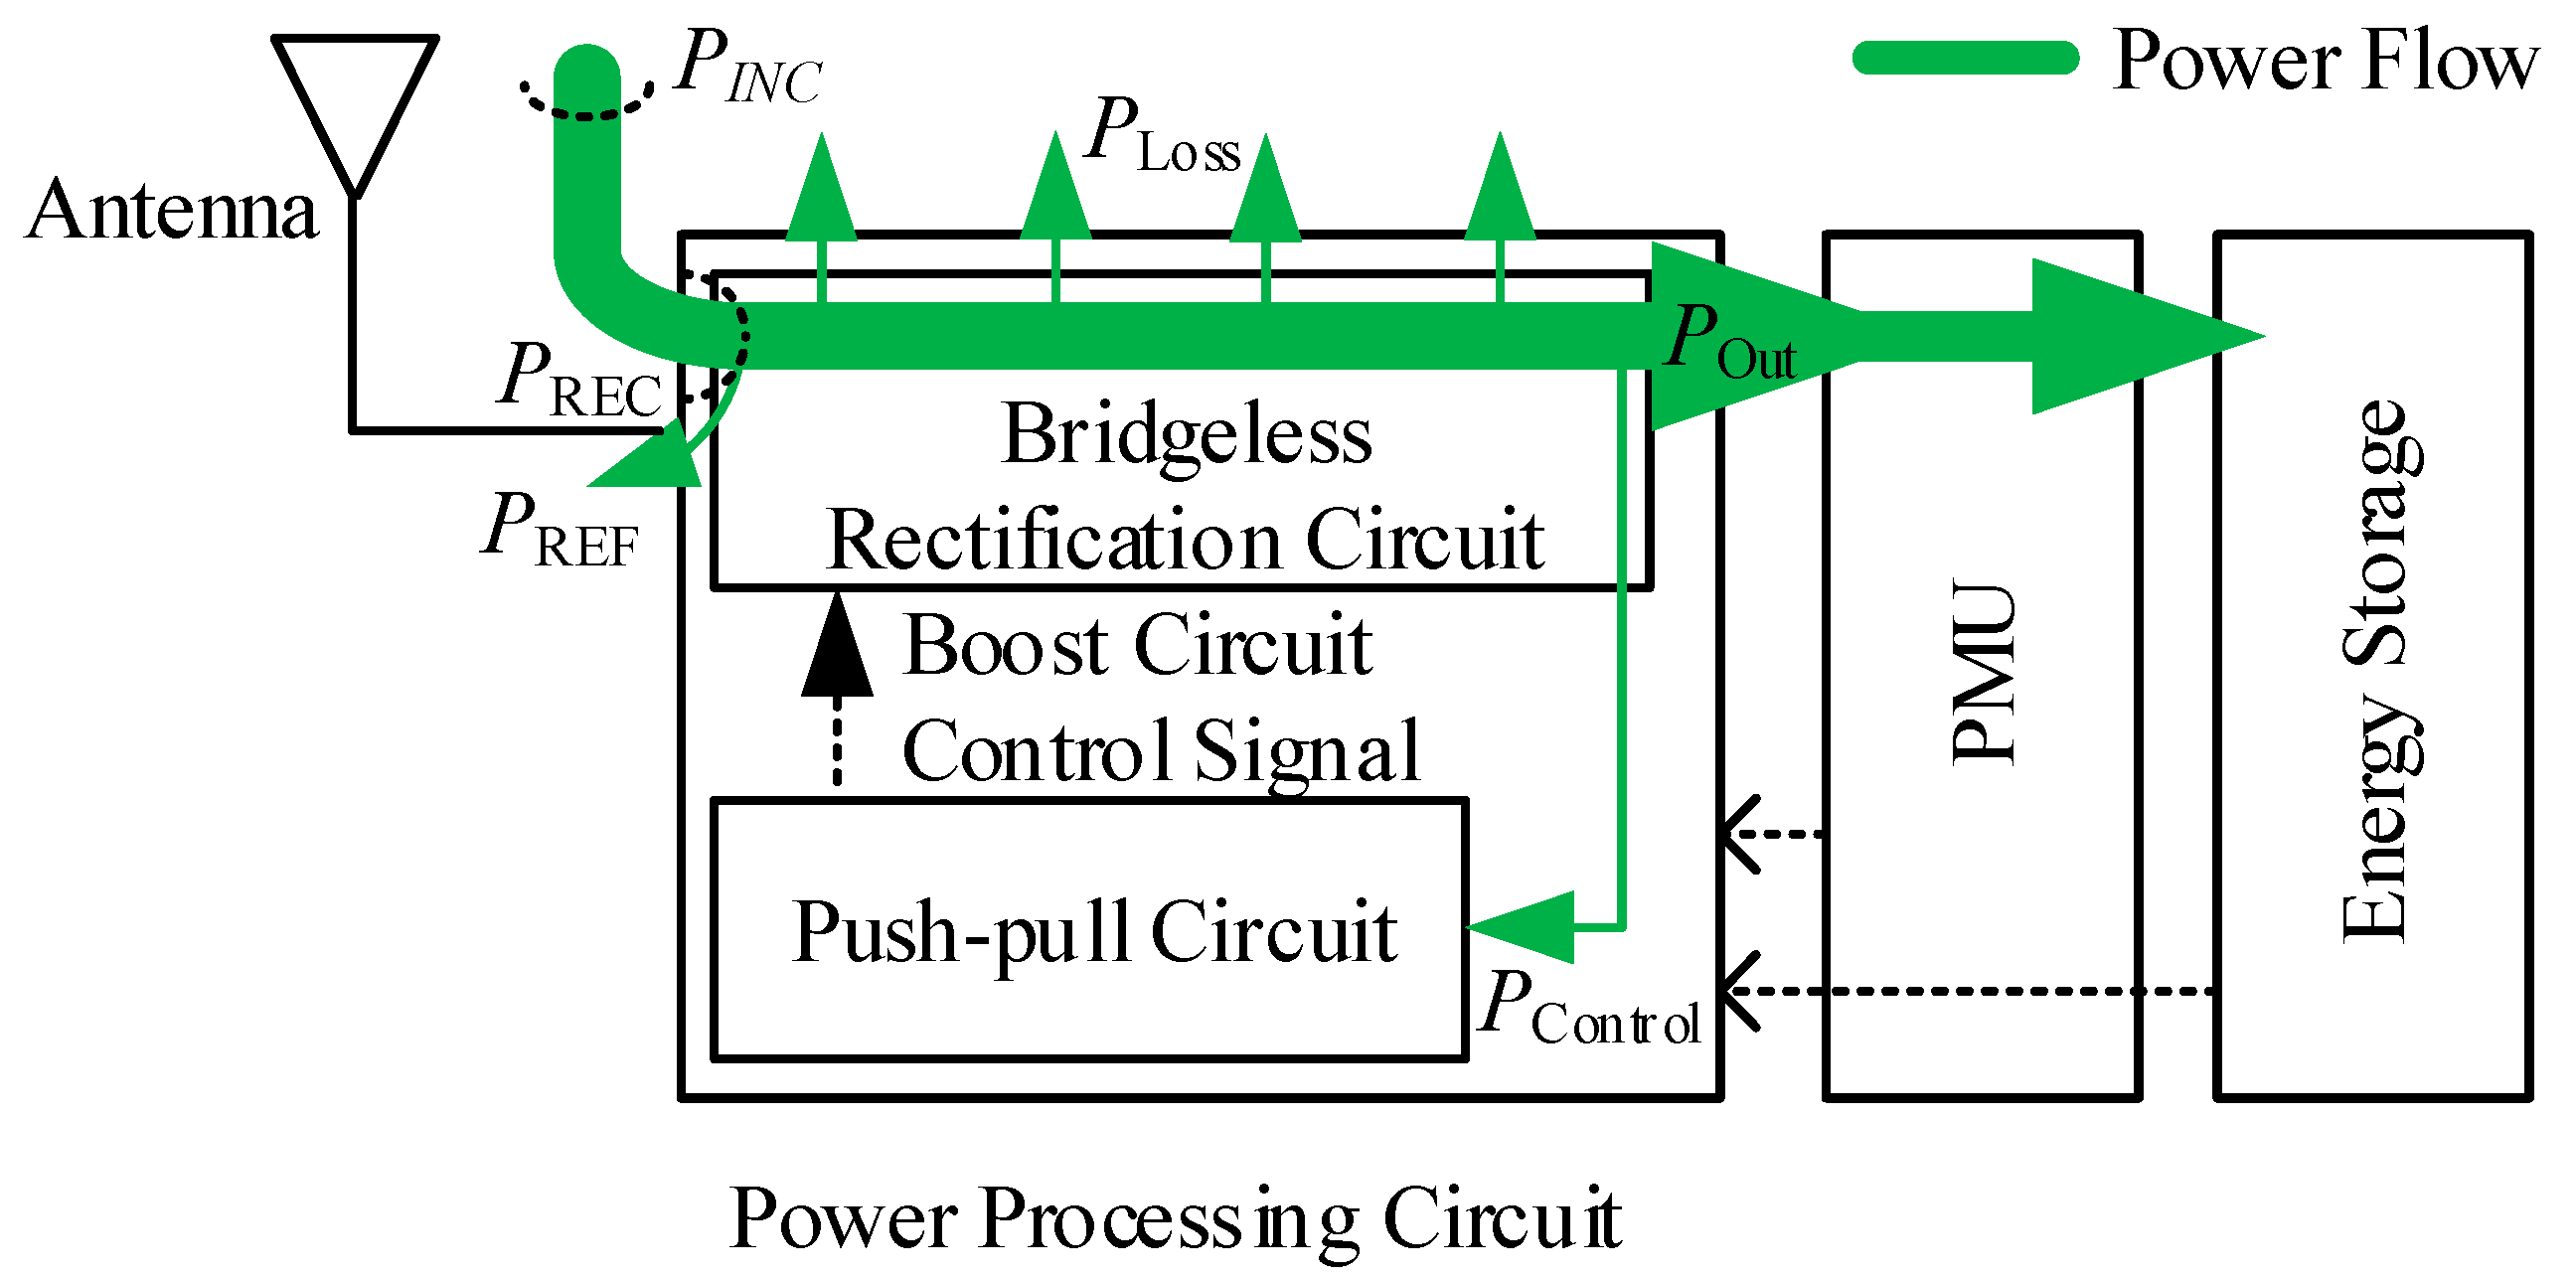 Applied Sciences Free Full Text A Power Processing Circuit For Energy In No